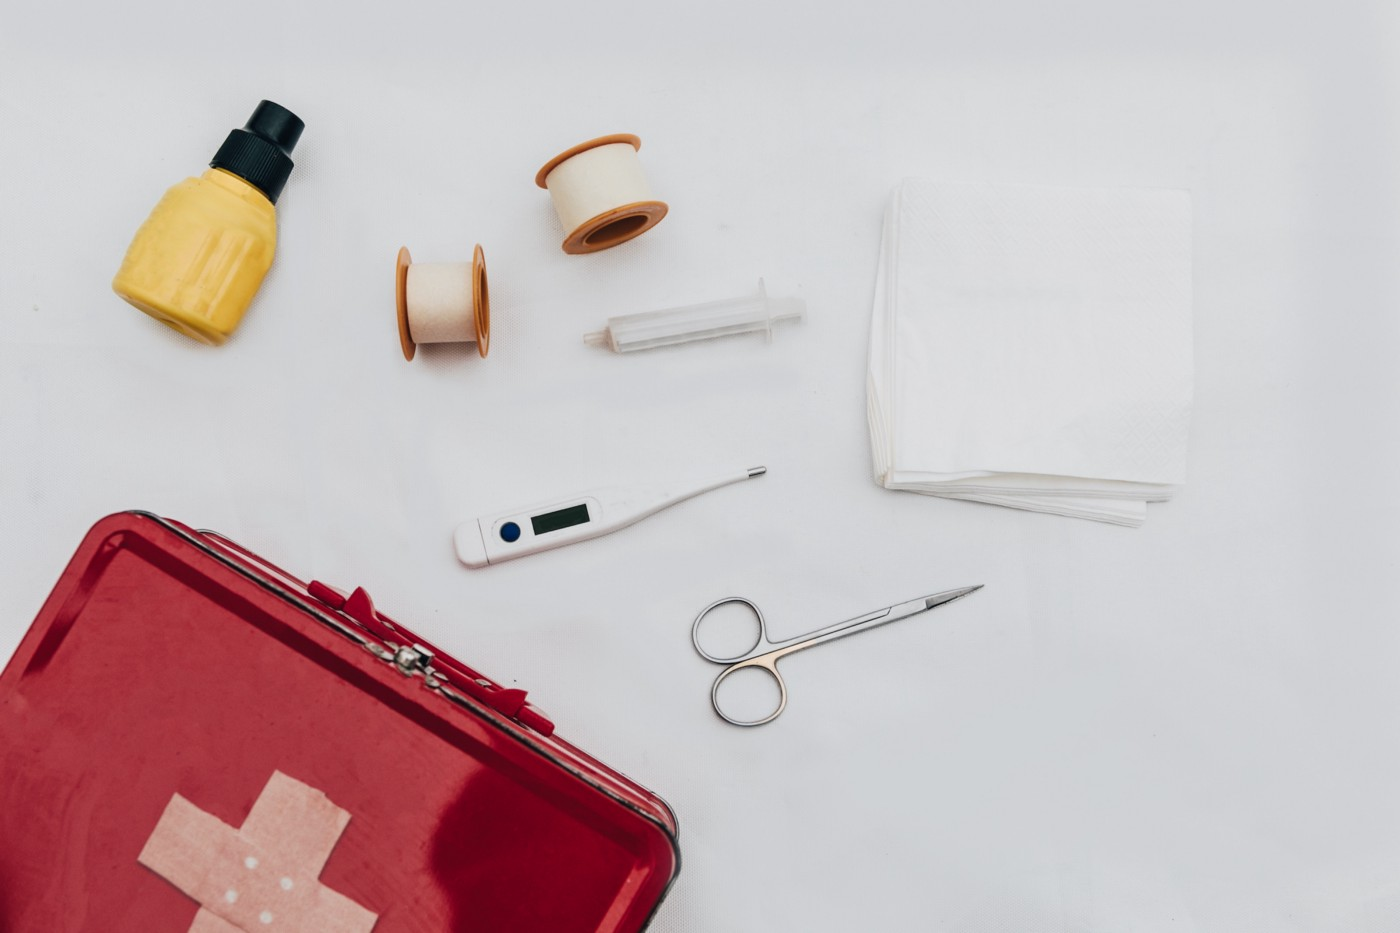 Overhead view of a red first aid kit and some of its contents: thermometer, scissors, gauze, and a small yellow bottle.